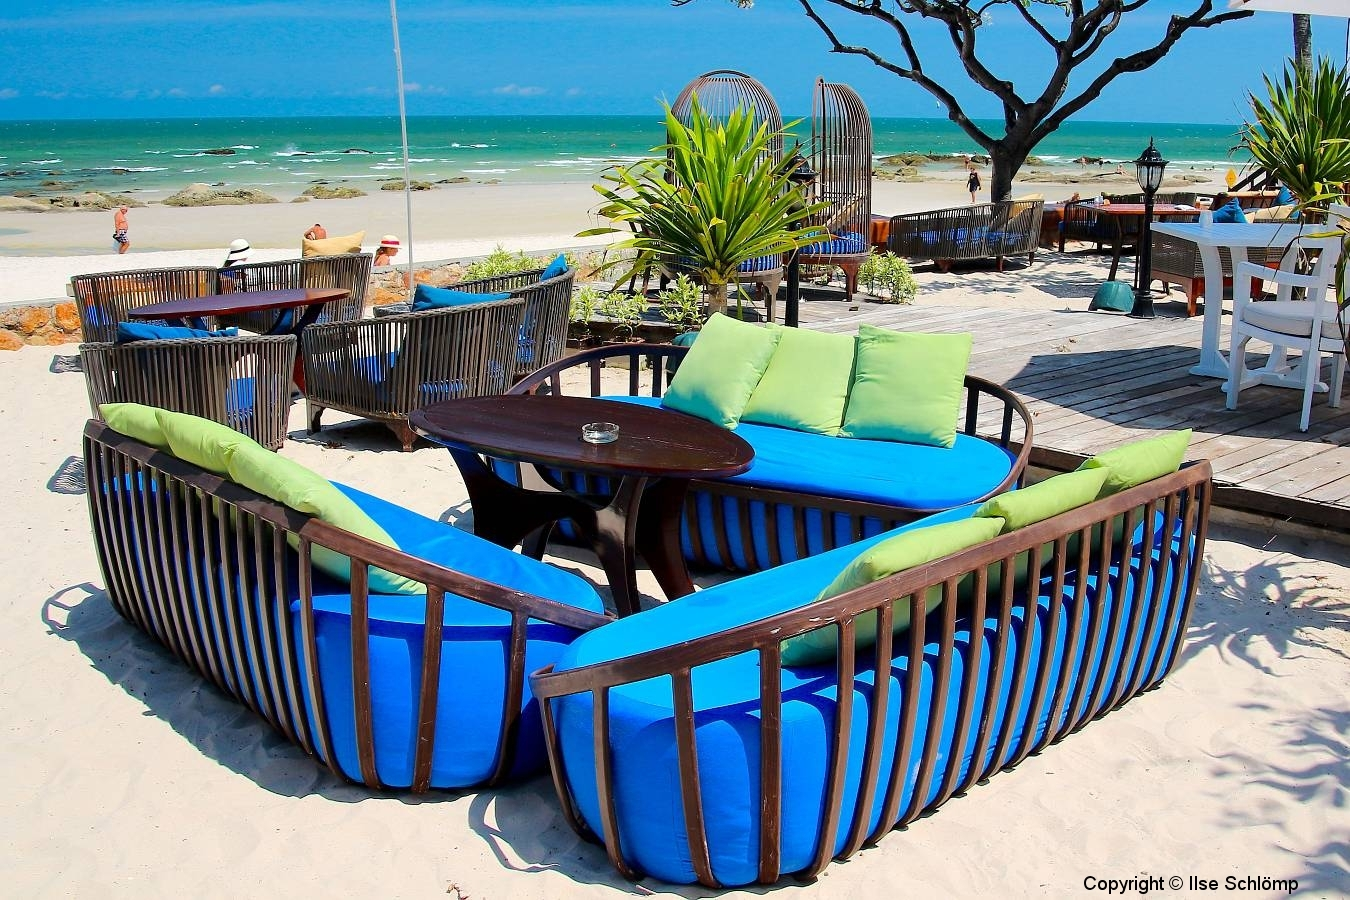 Thailand, Hua Hin, Centara Grand Beach Resort